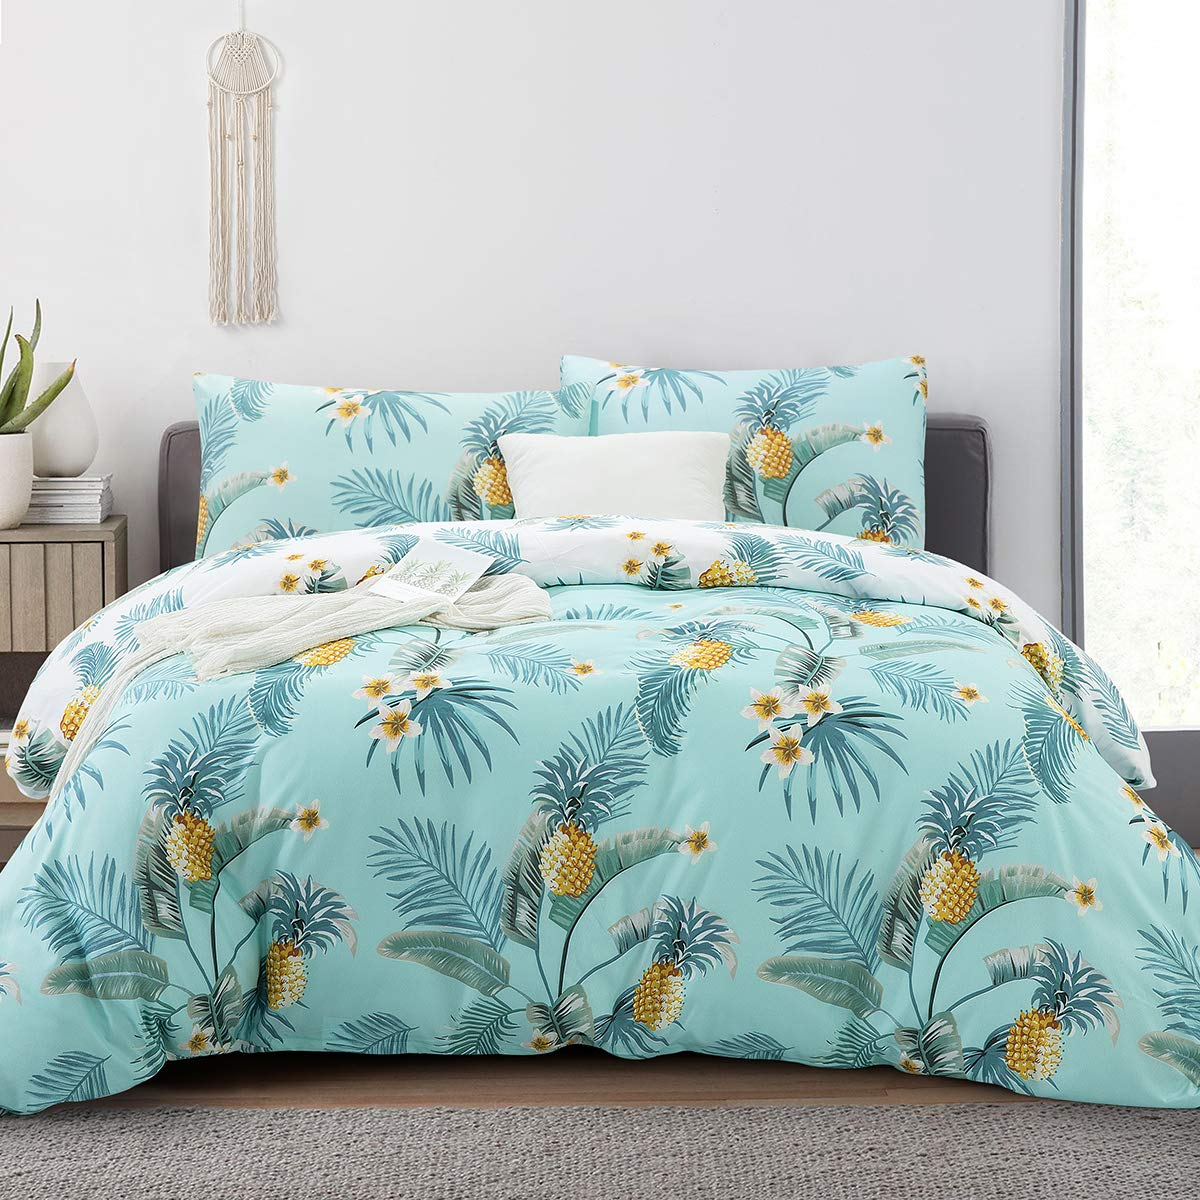 "ARTALL Soft Duvet Cover Set, Down Comforter Quilt Cover with Zipper Closure, Ties, Pineapple Pattern, Blue and Green, Full/Queen Size(90""x90"")"